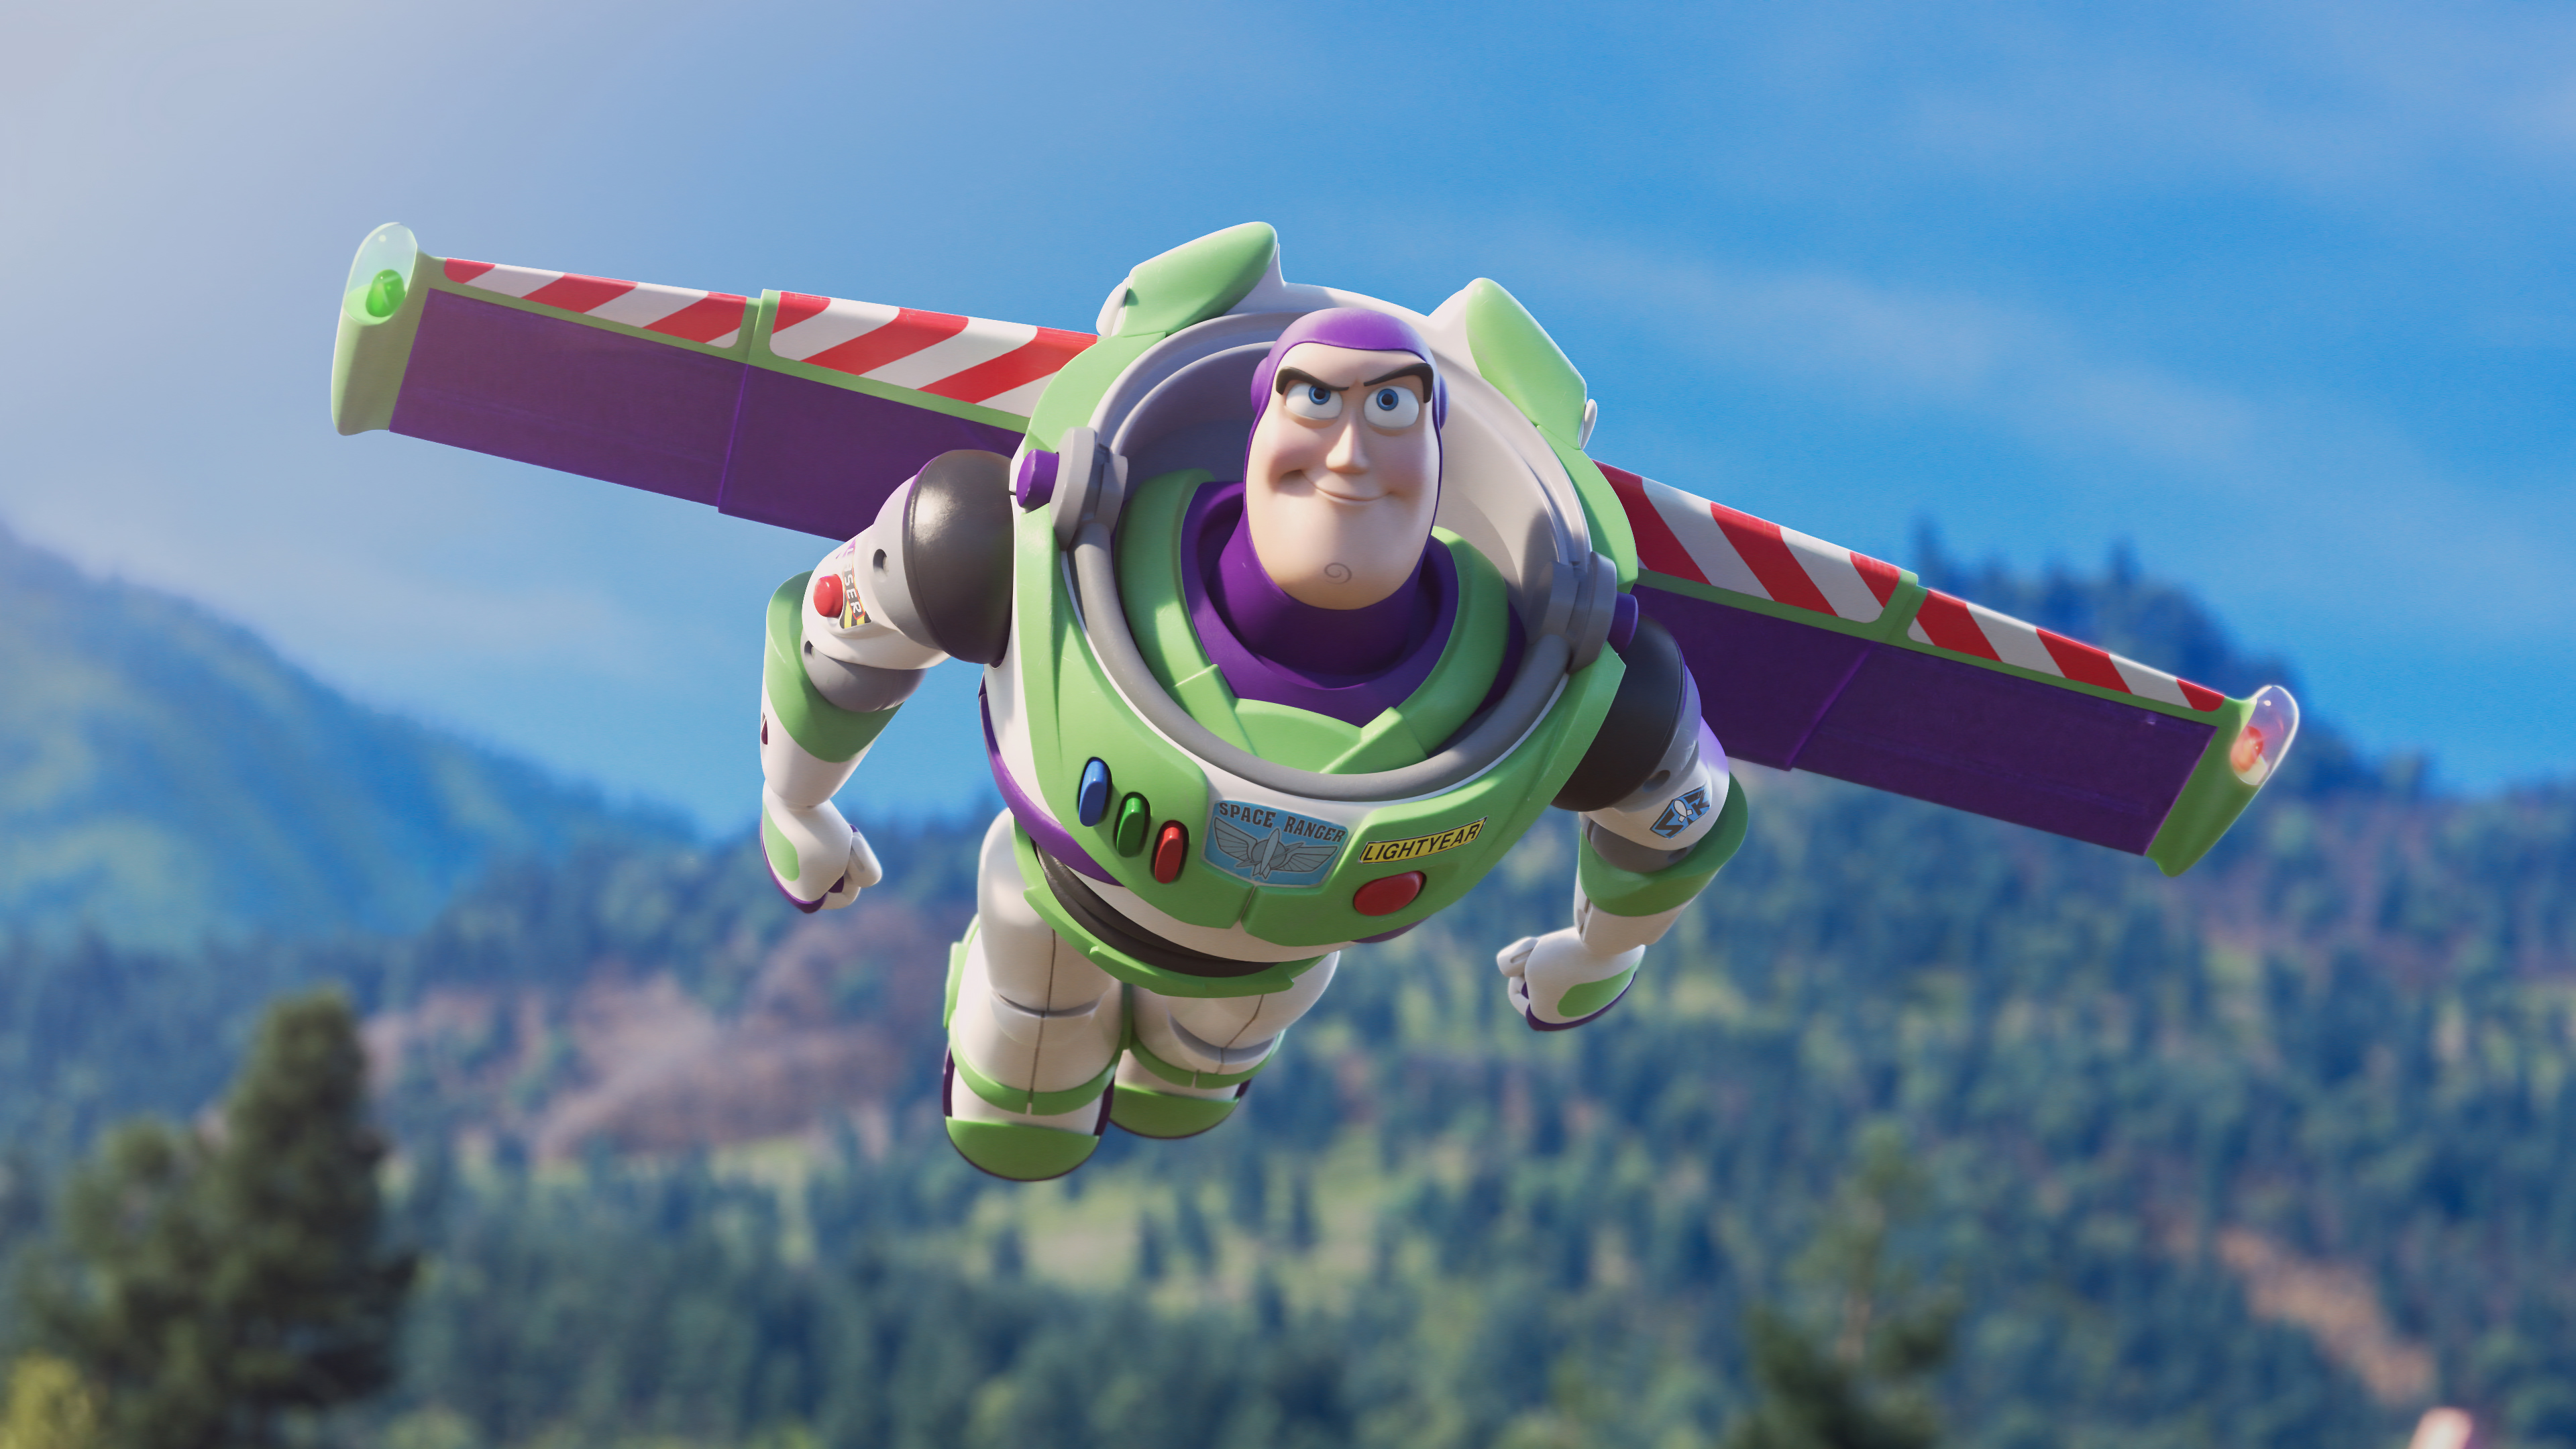 Buzz Lightyear Flying Toy Story 4 Wallpaper 4k Ultra Hd Id3327